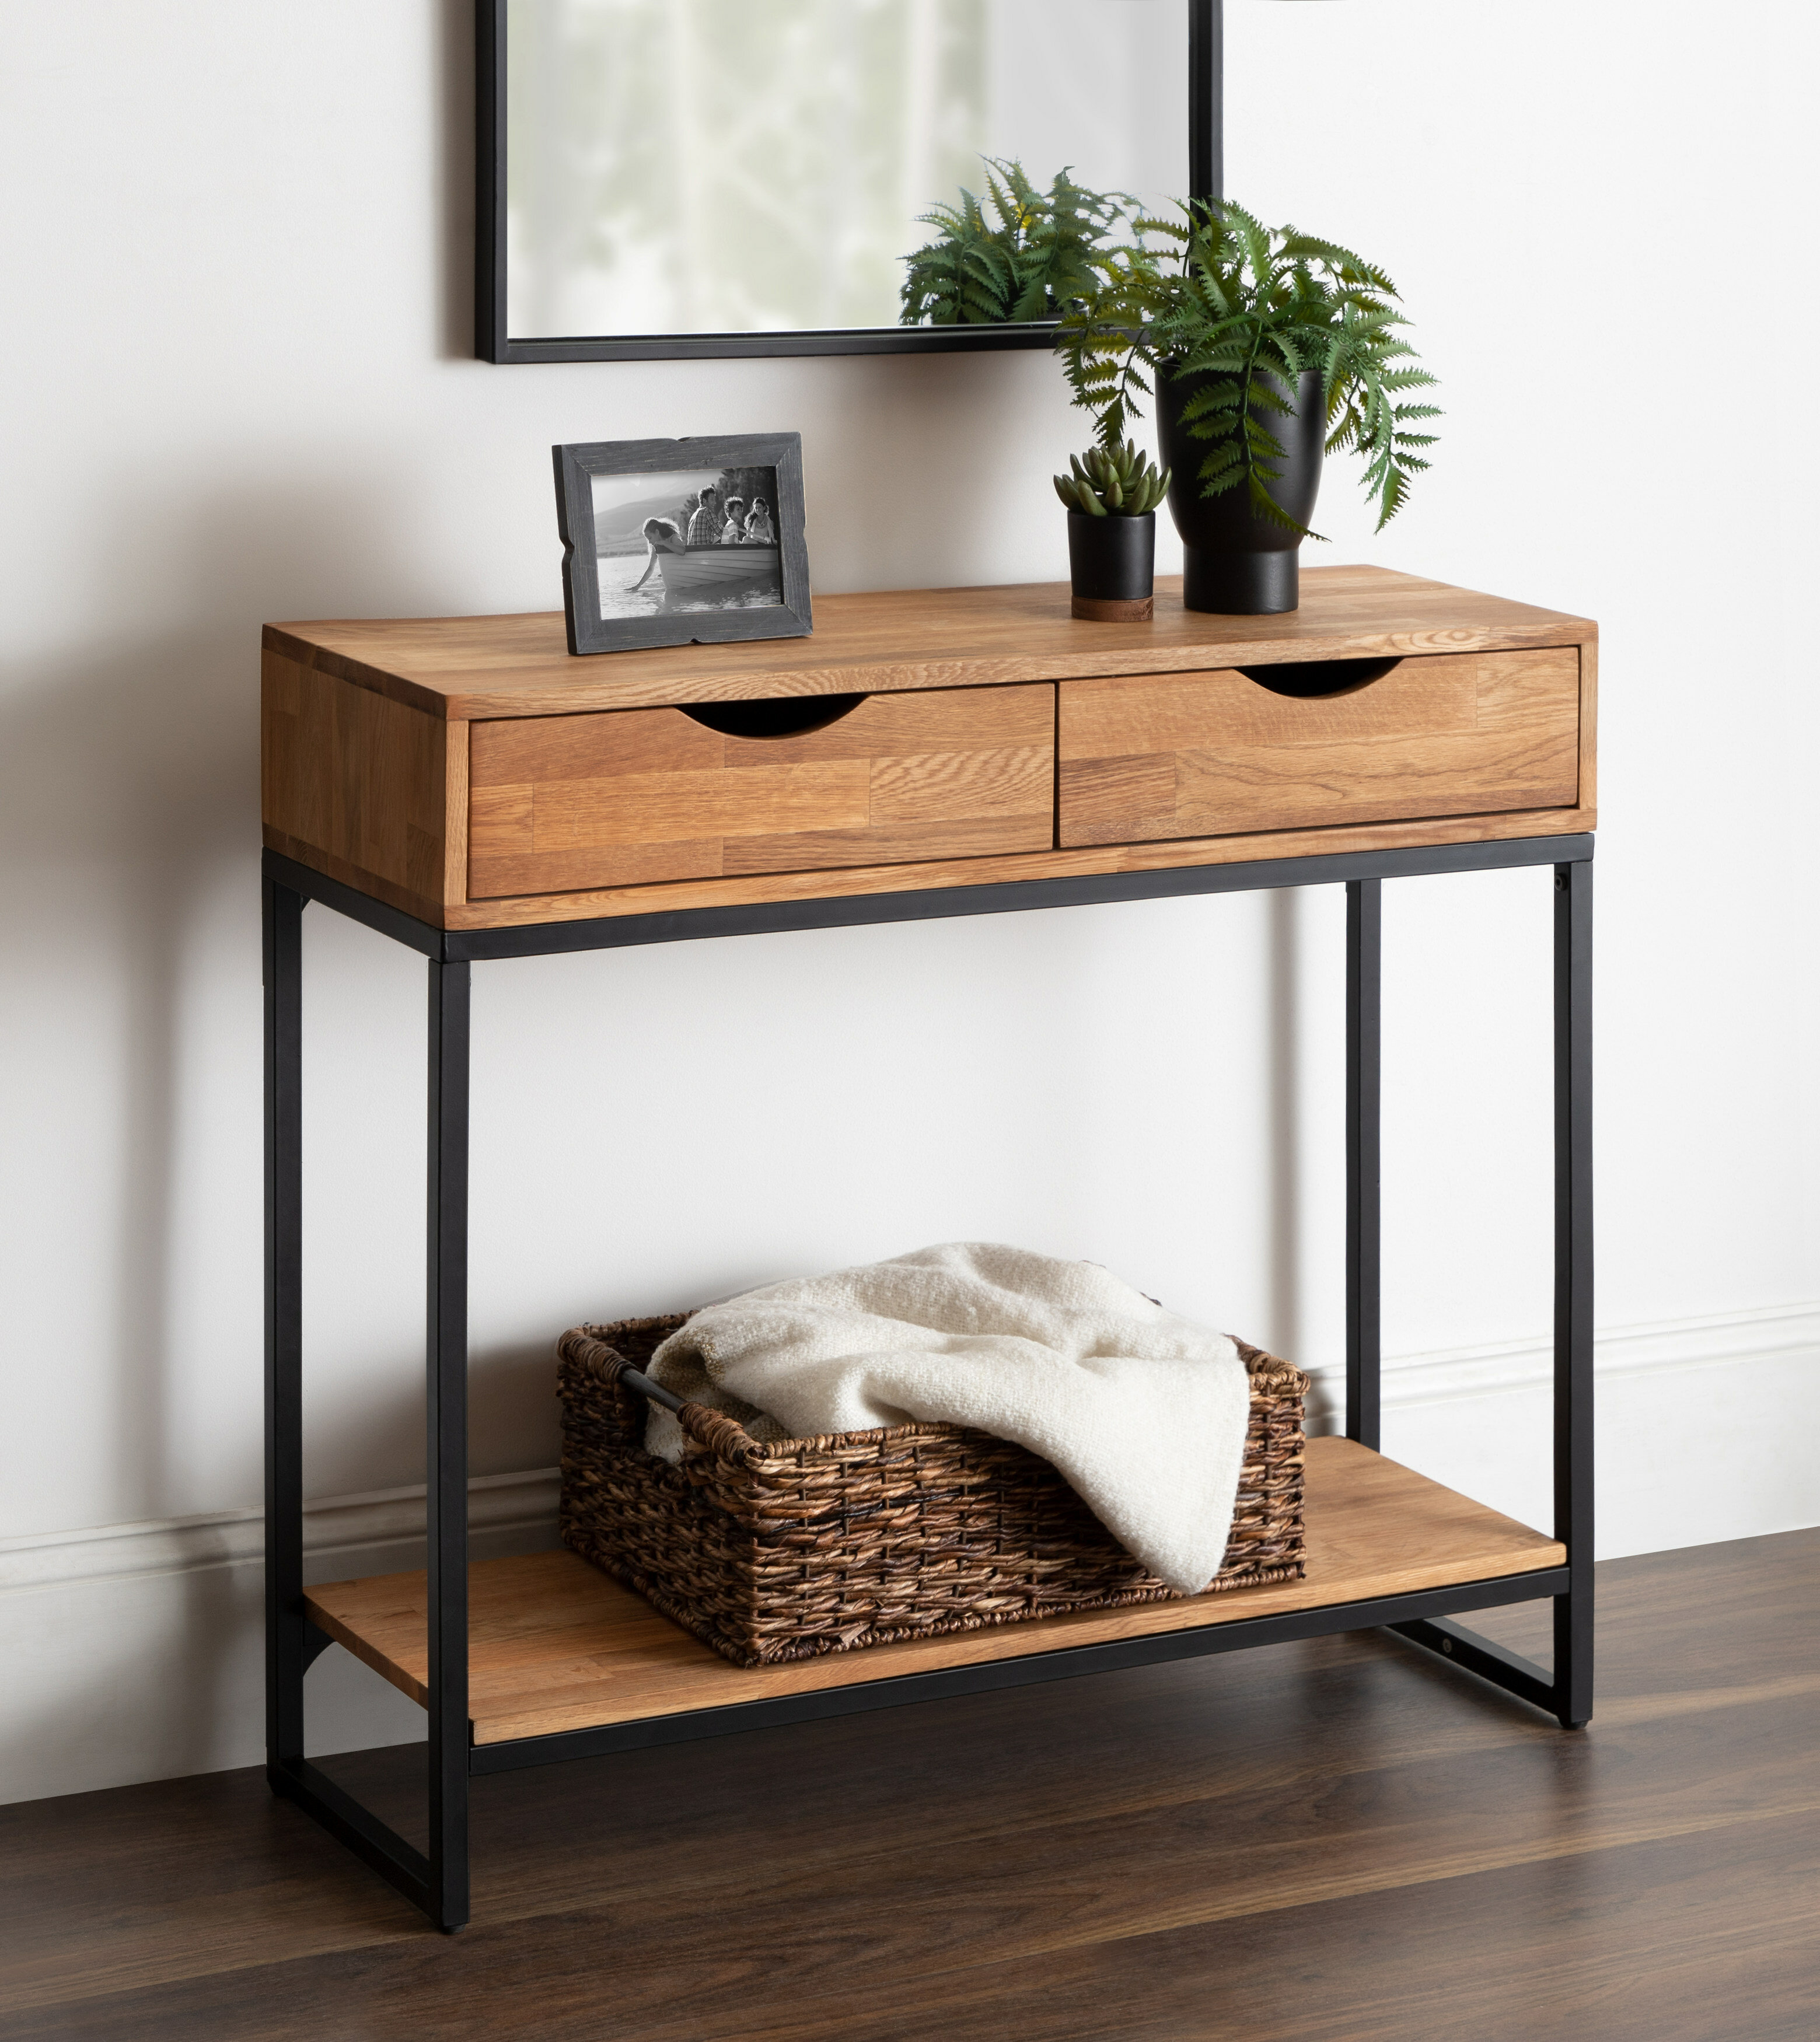 Union Rustic Tallant 35 5 Solid Wood Console Table Reviews Wayfair